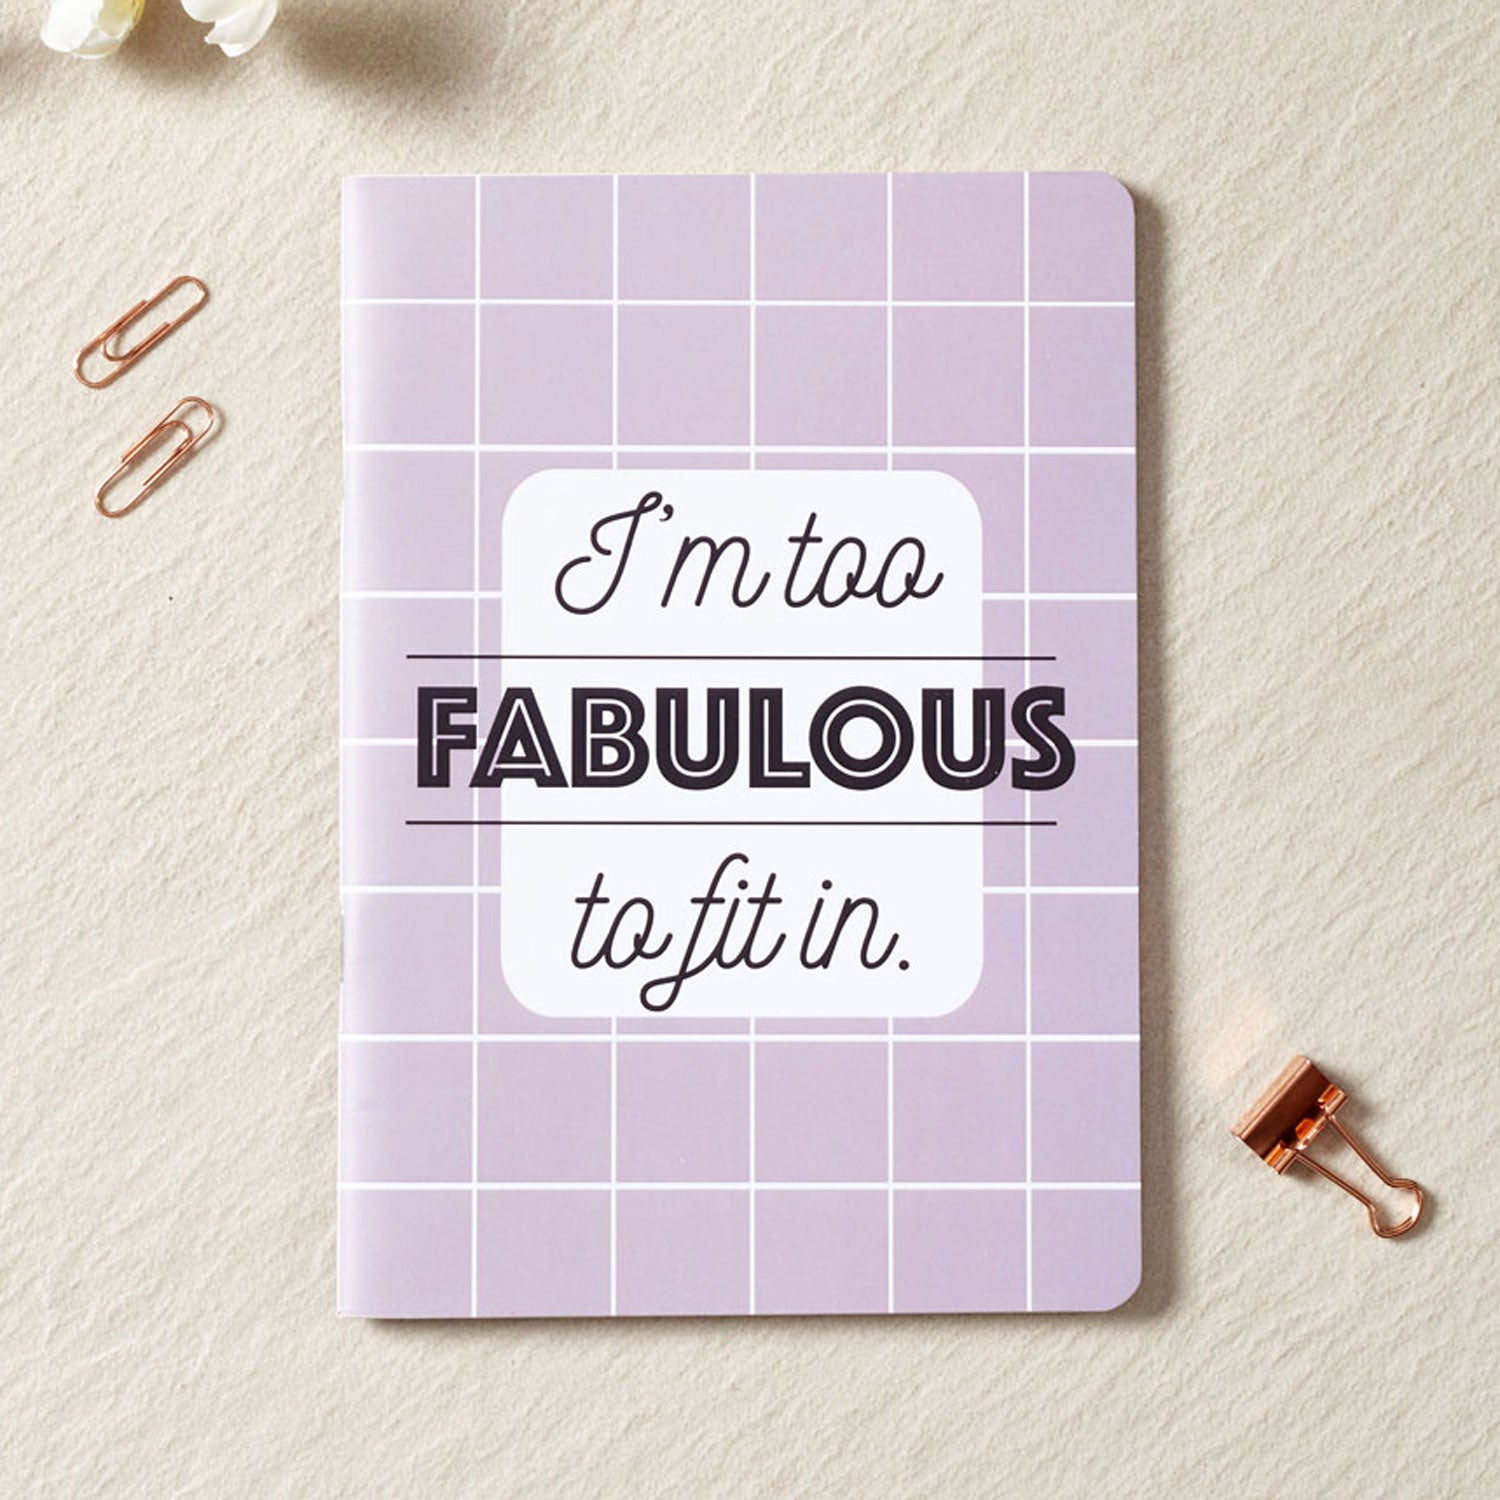 I'm Too Fabulous Notebook